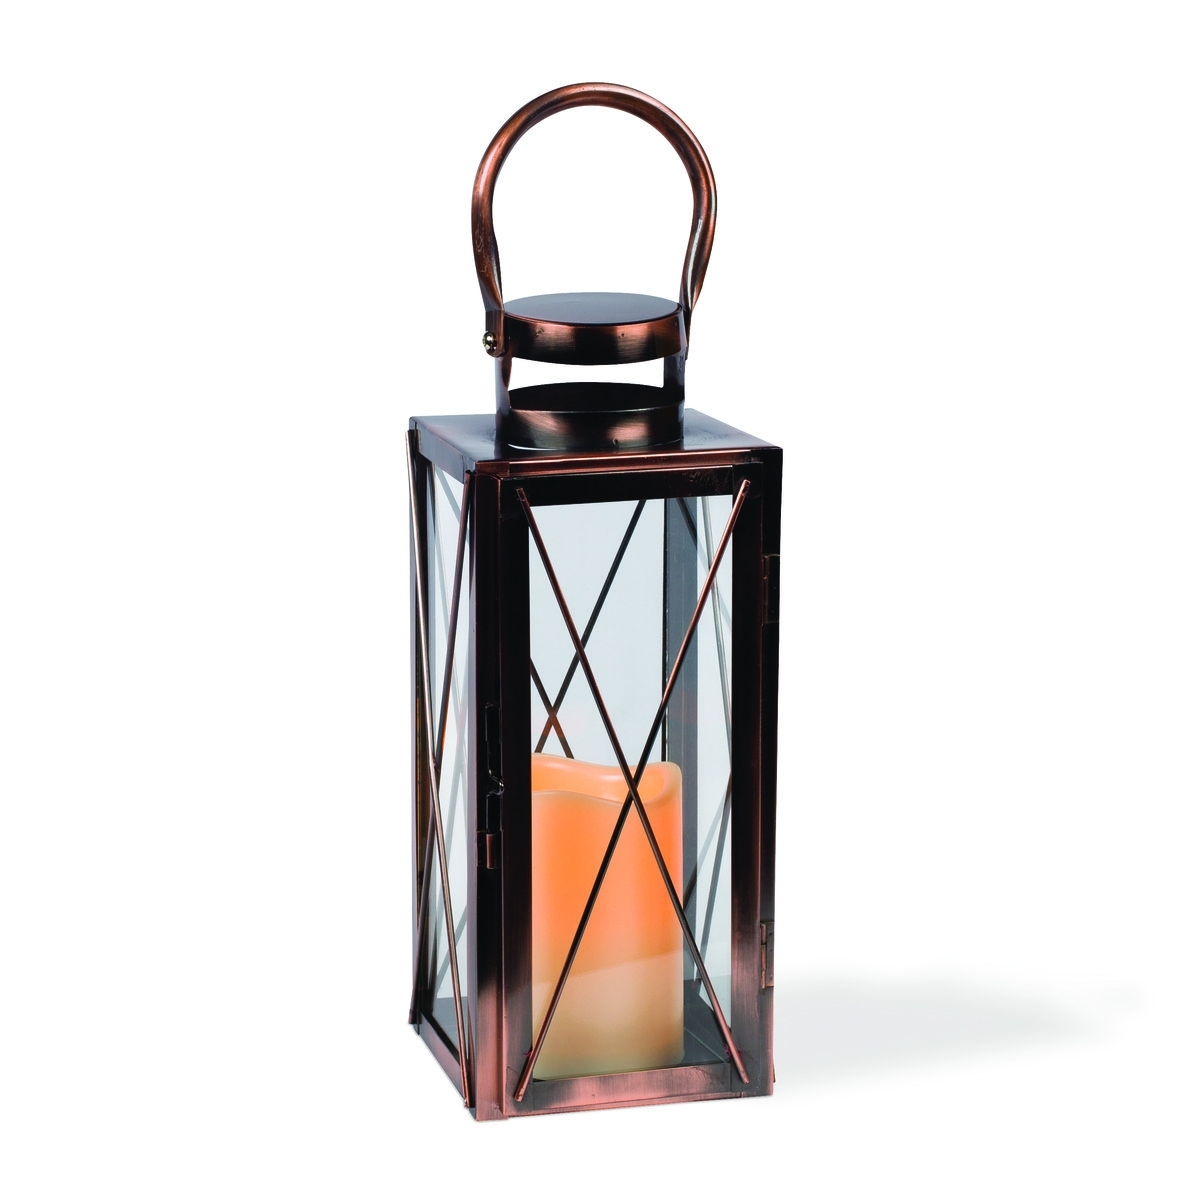 Outdoor Memorial Lanterns Intended For Latest Candle Lanterns – Yard Envy (View 19 of 20)